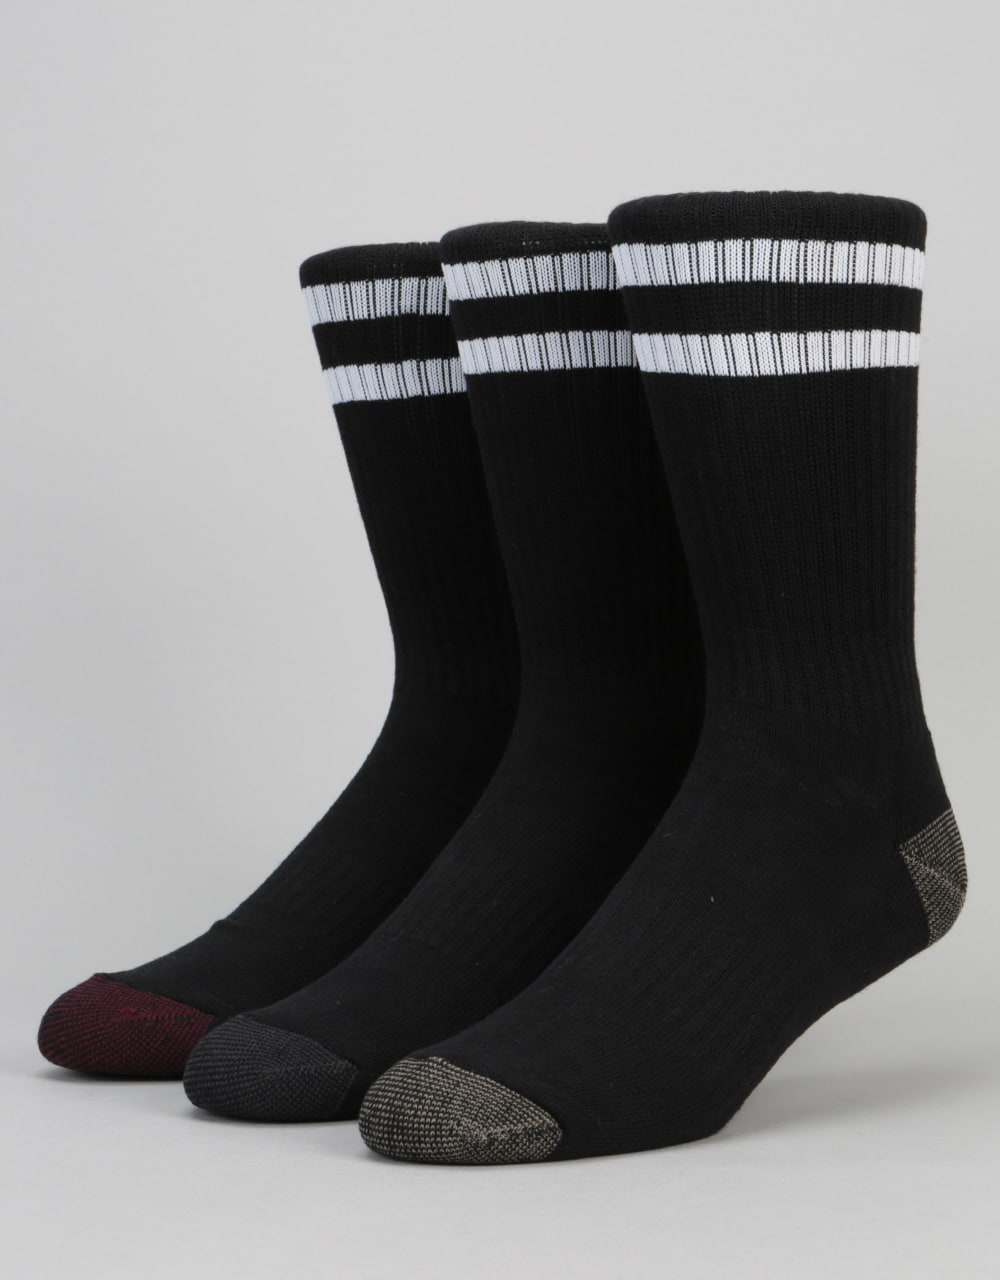 Globe Carter Crew Socks 5 Pack